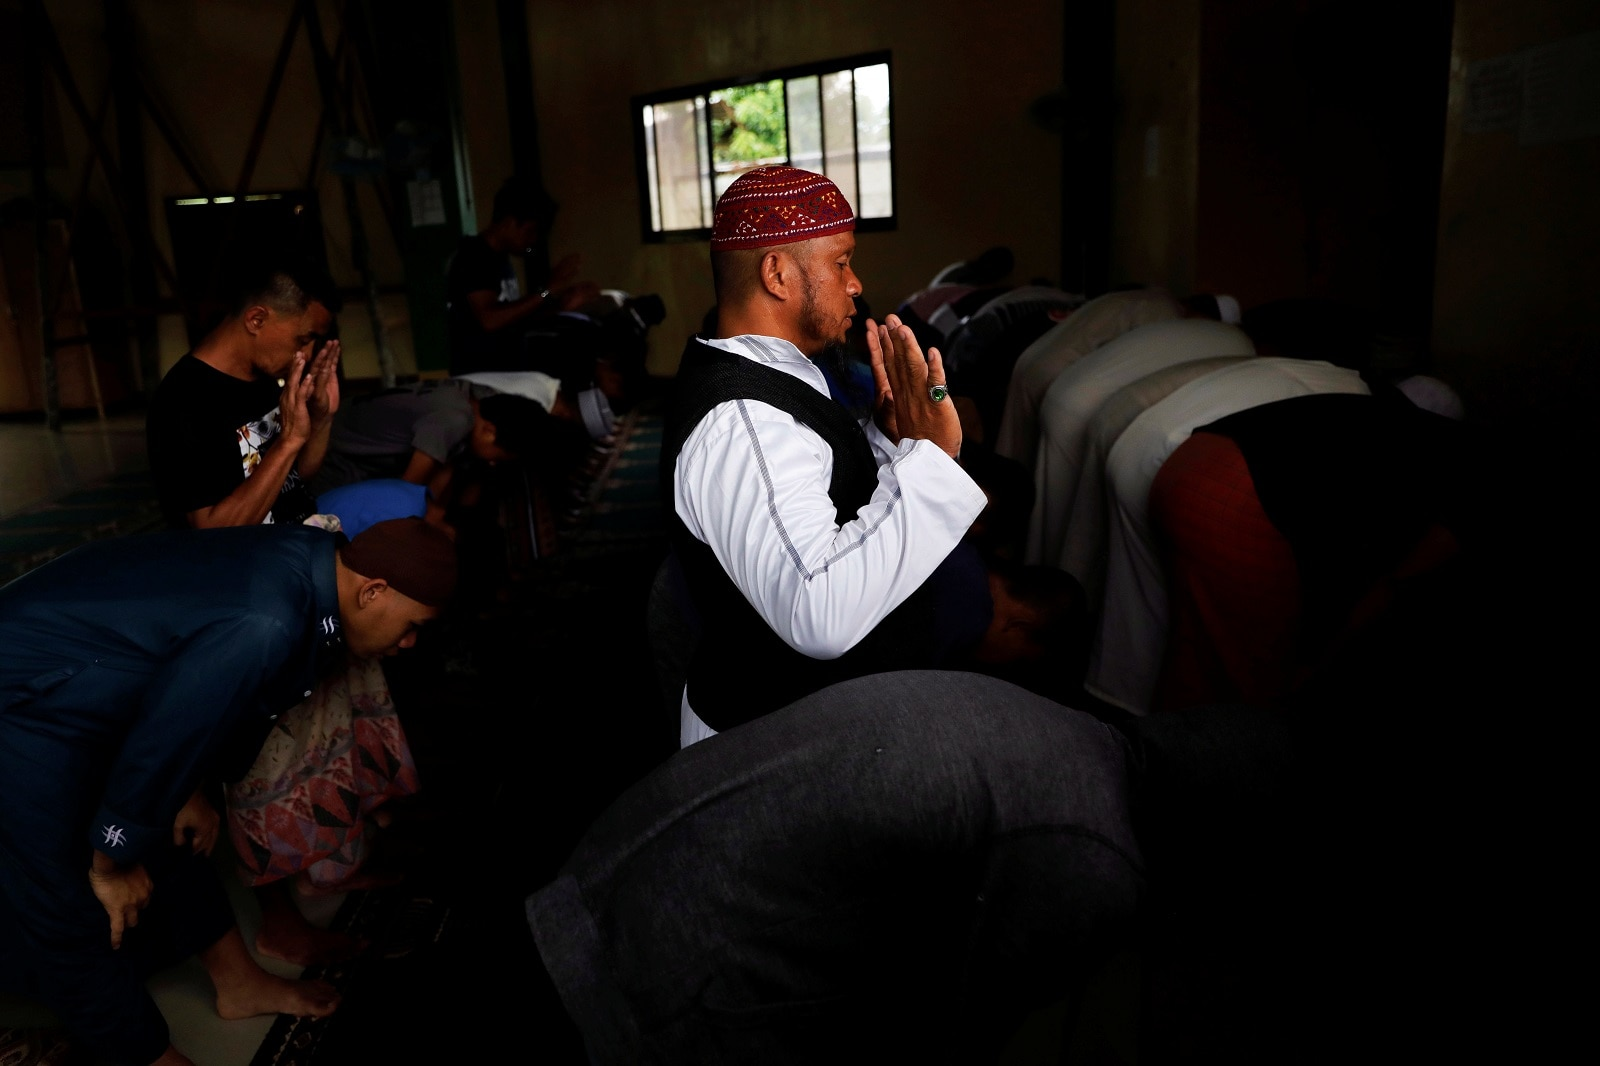 Mohammad Ali Acampong, 42, prays inside a mosque at Mipaga, Marawi City, Lanao del Sur province, Philippines, May 12, 2019. REUTERS/Eloisa Lopez